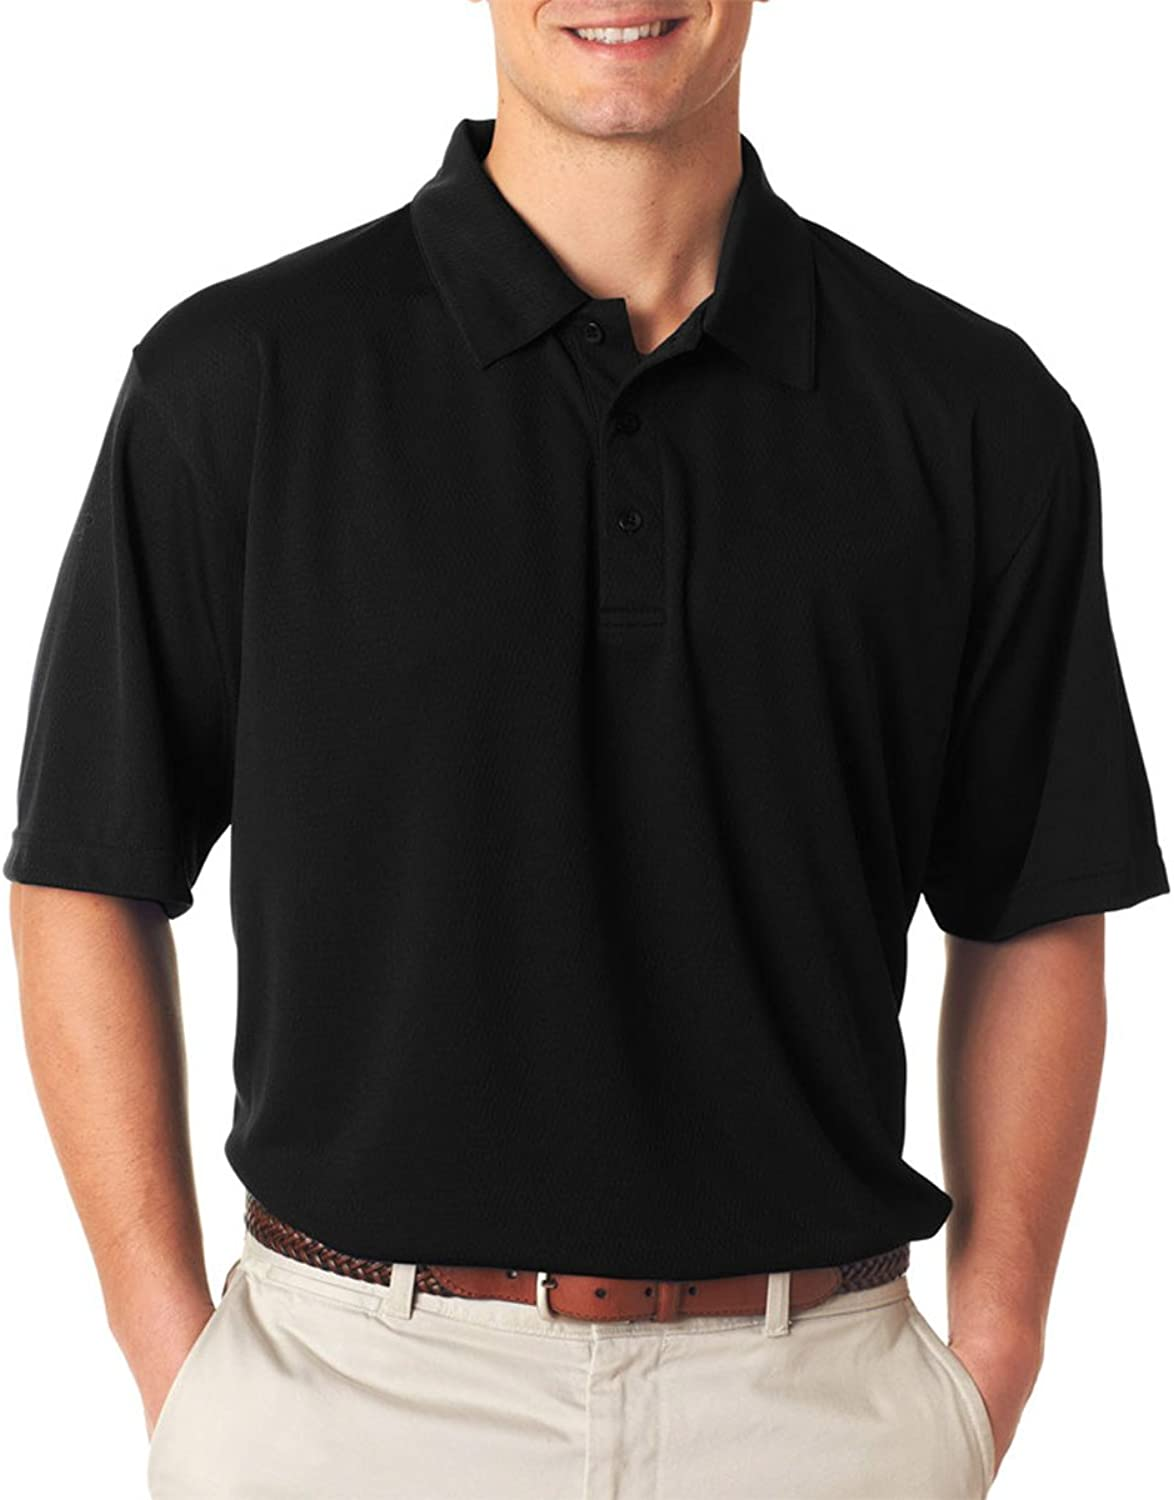 UltraClub Men's Performance Polo Shirt ( Pack of 12 )